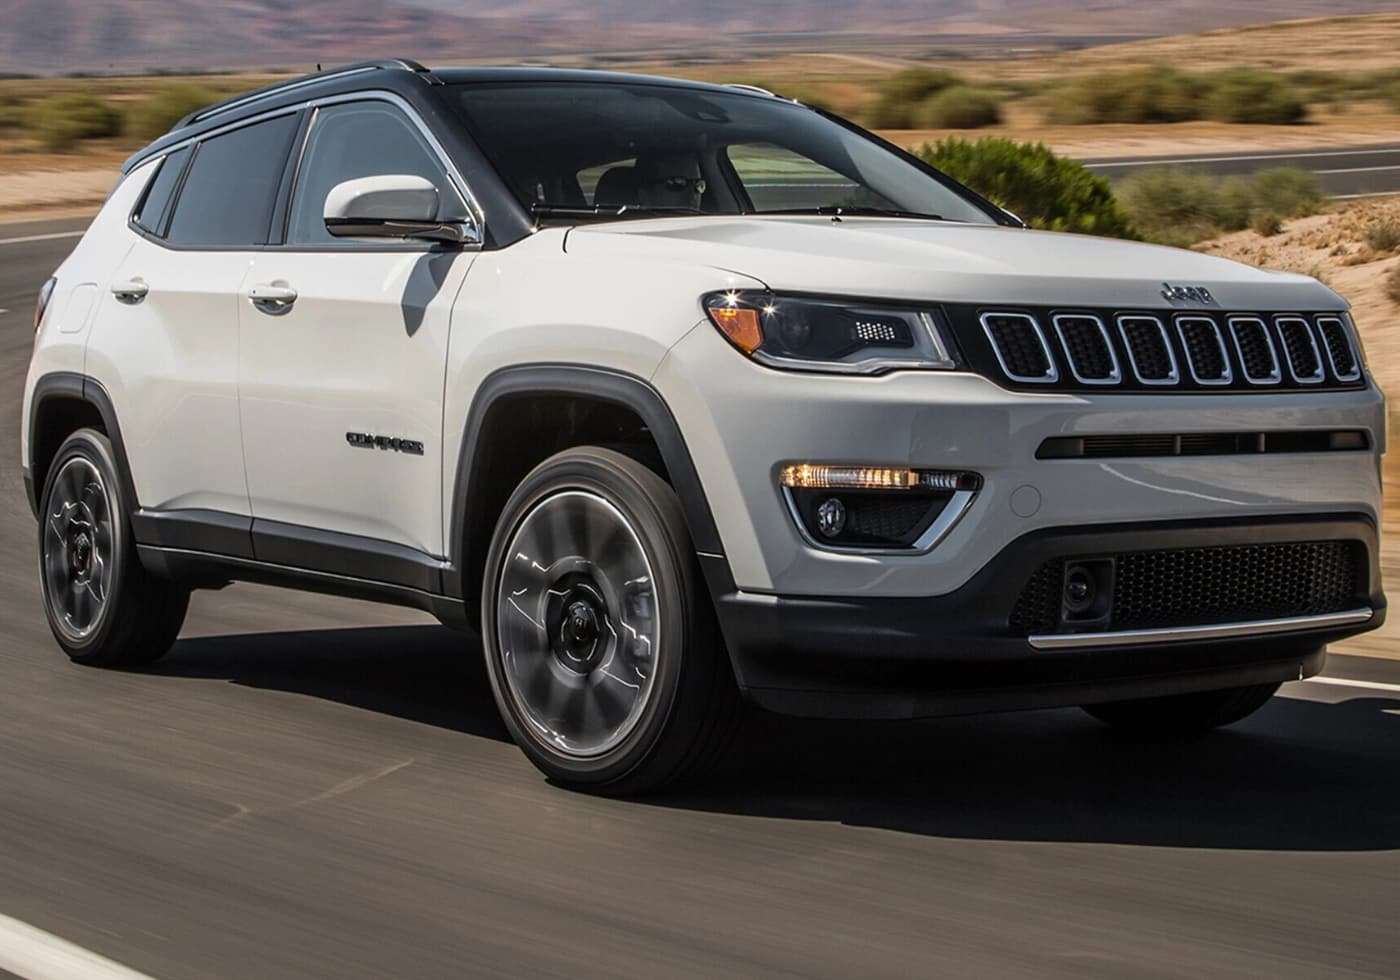 Used White 2018 Jeep Compass with black roof and accents